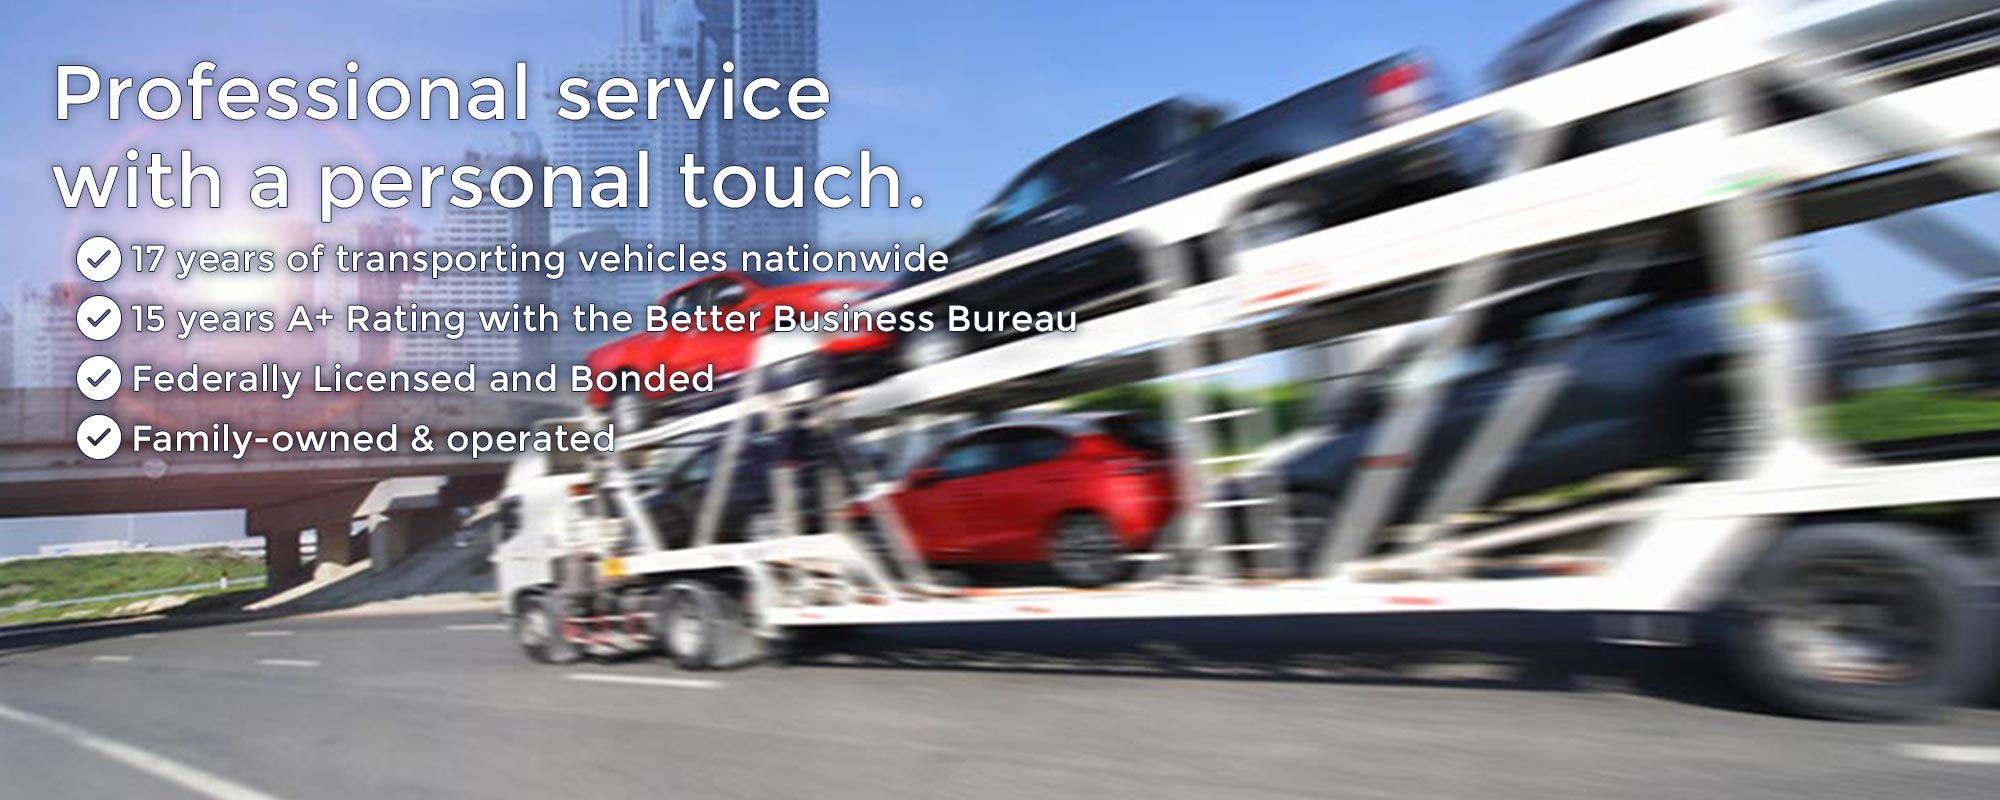 We can ship your car anywhere<br> with our  professional service and a personal touch!